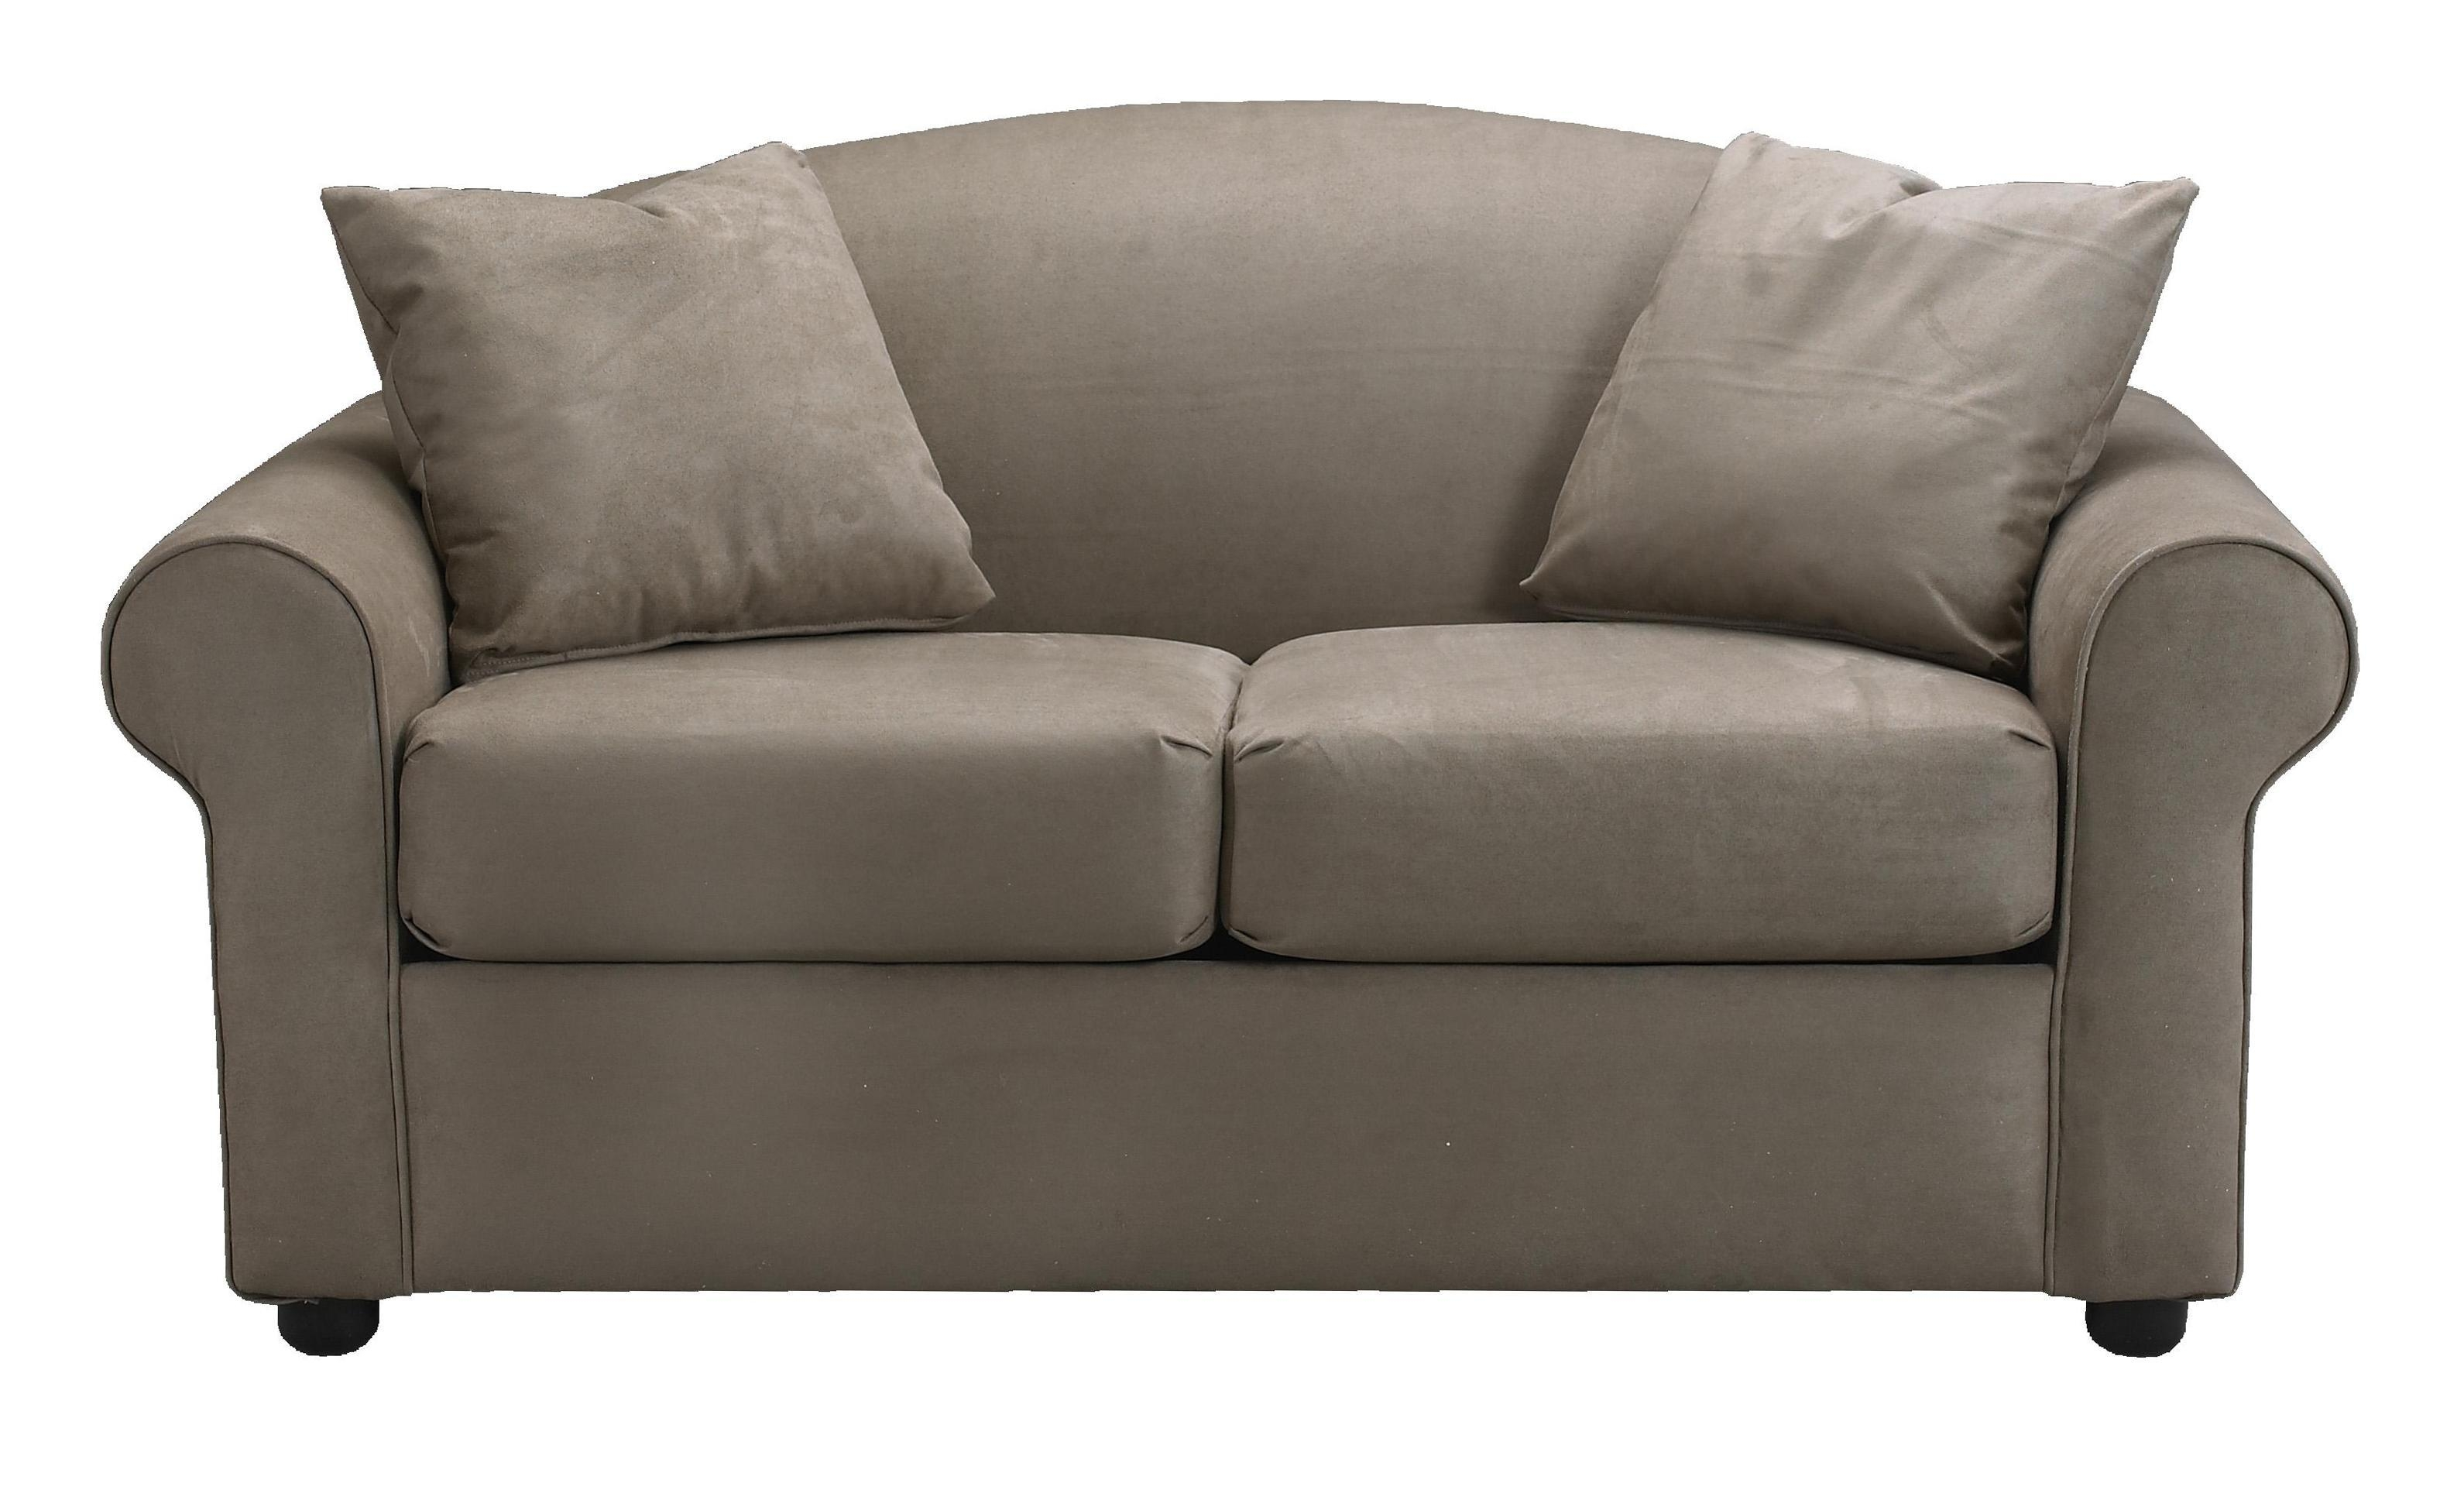 Sofa Couch Loveseat Sleeper | Fonky Pertaining To Denim Loveseats (Image 17 of 20)